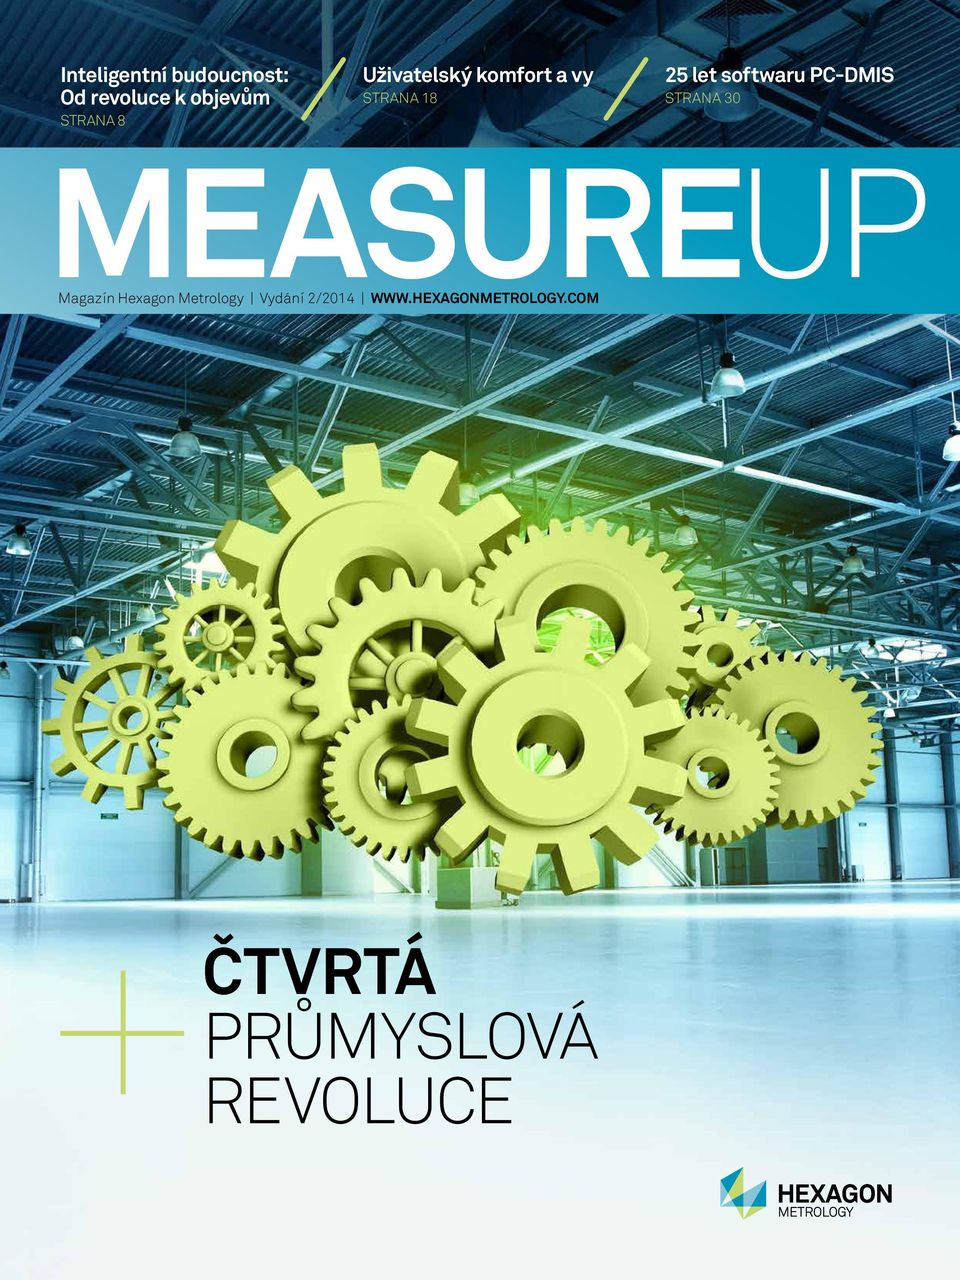 PC-DMIS STRANA 30 MEASUREUP Magazín Hexagon Metrology